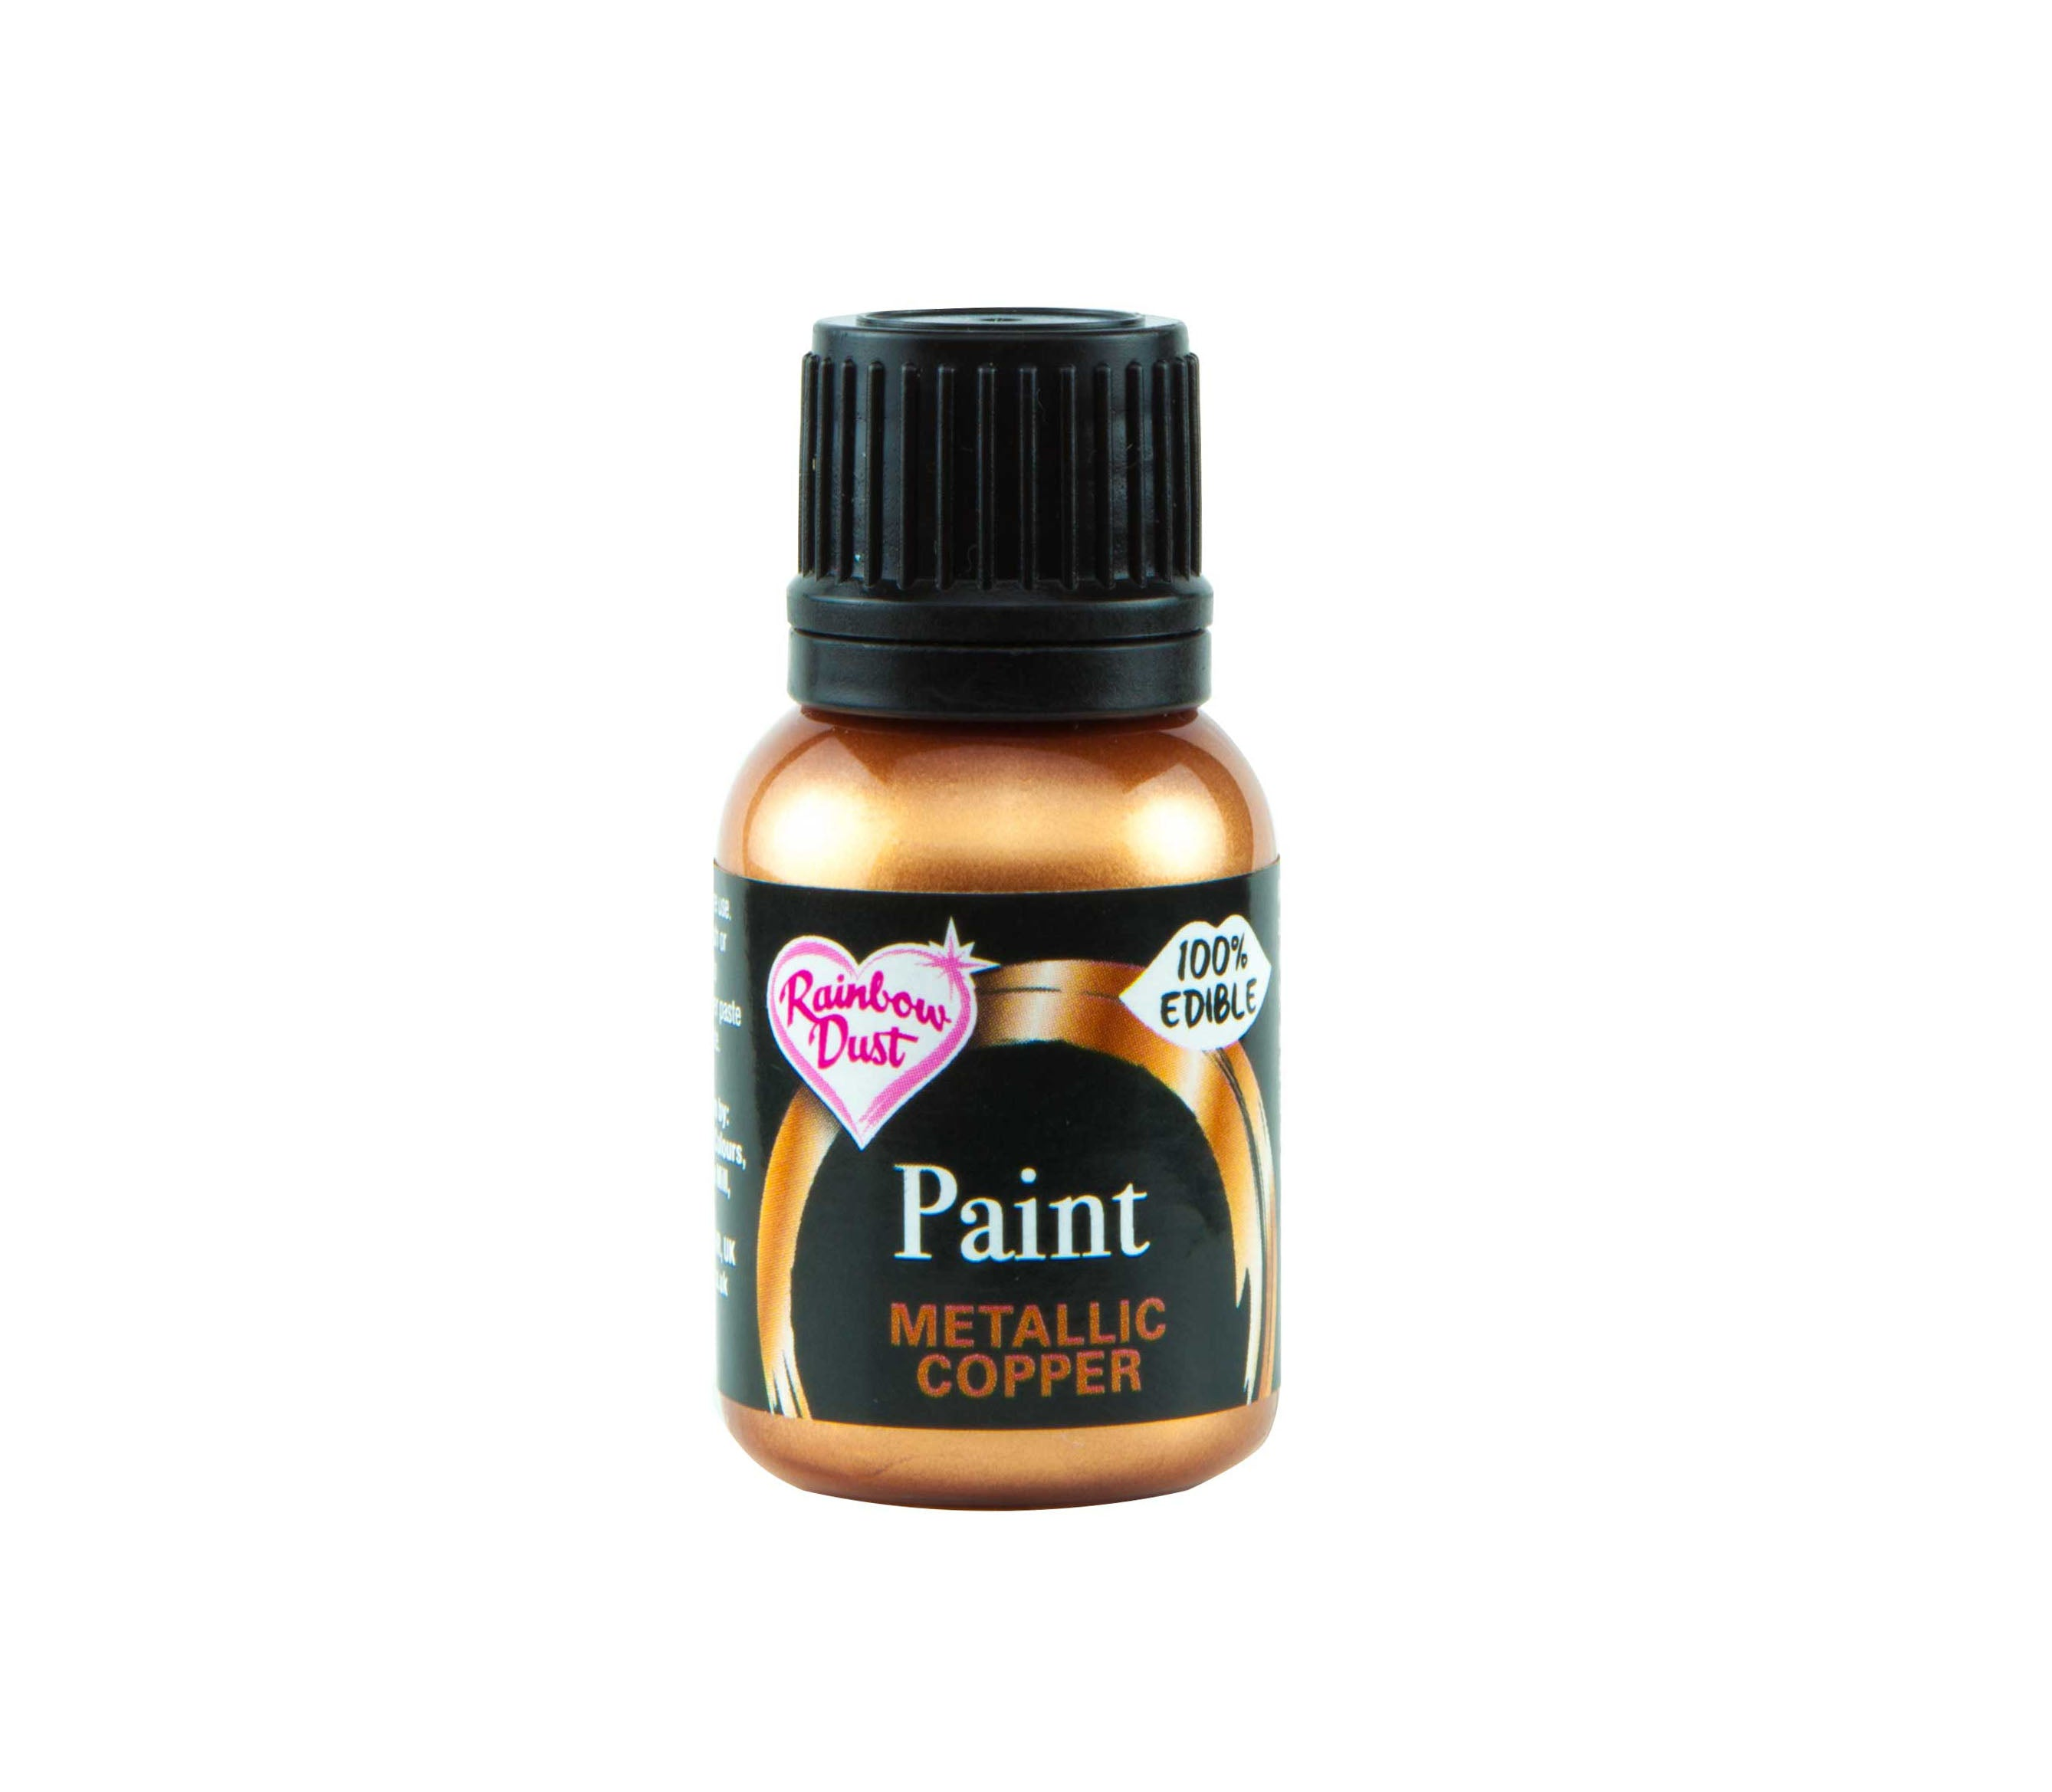 Edible Paints Metallic Copper 25g